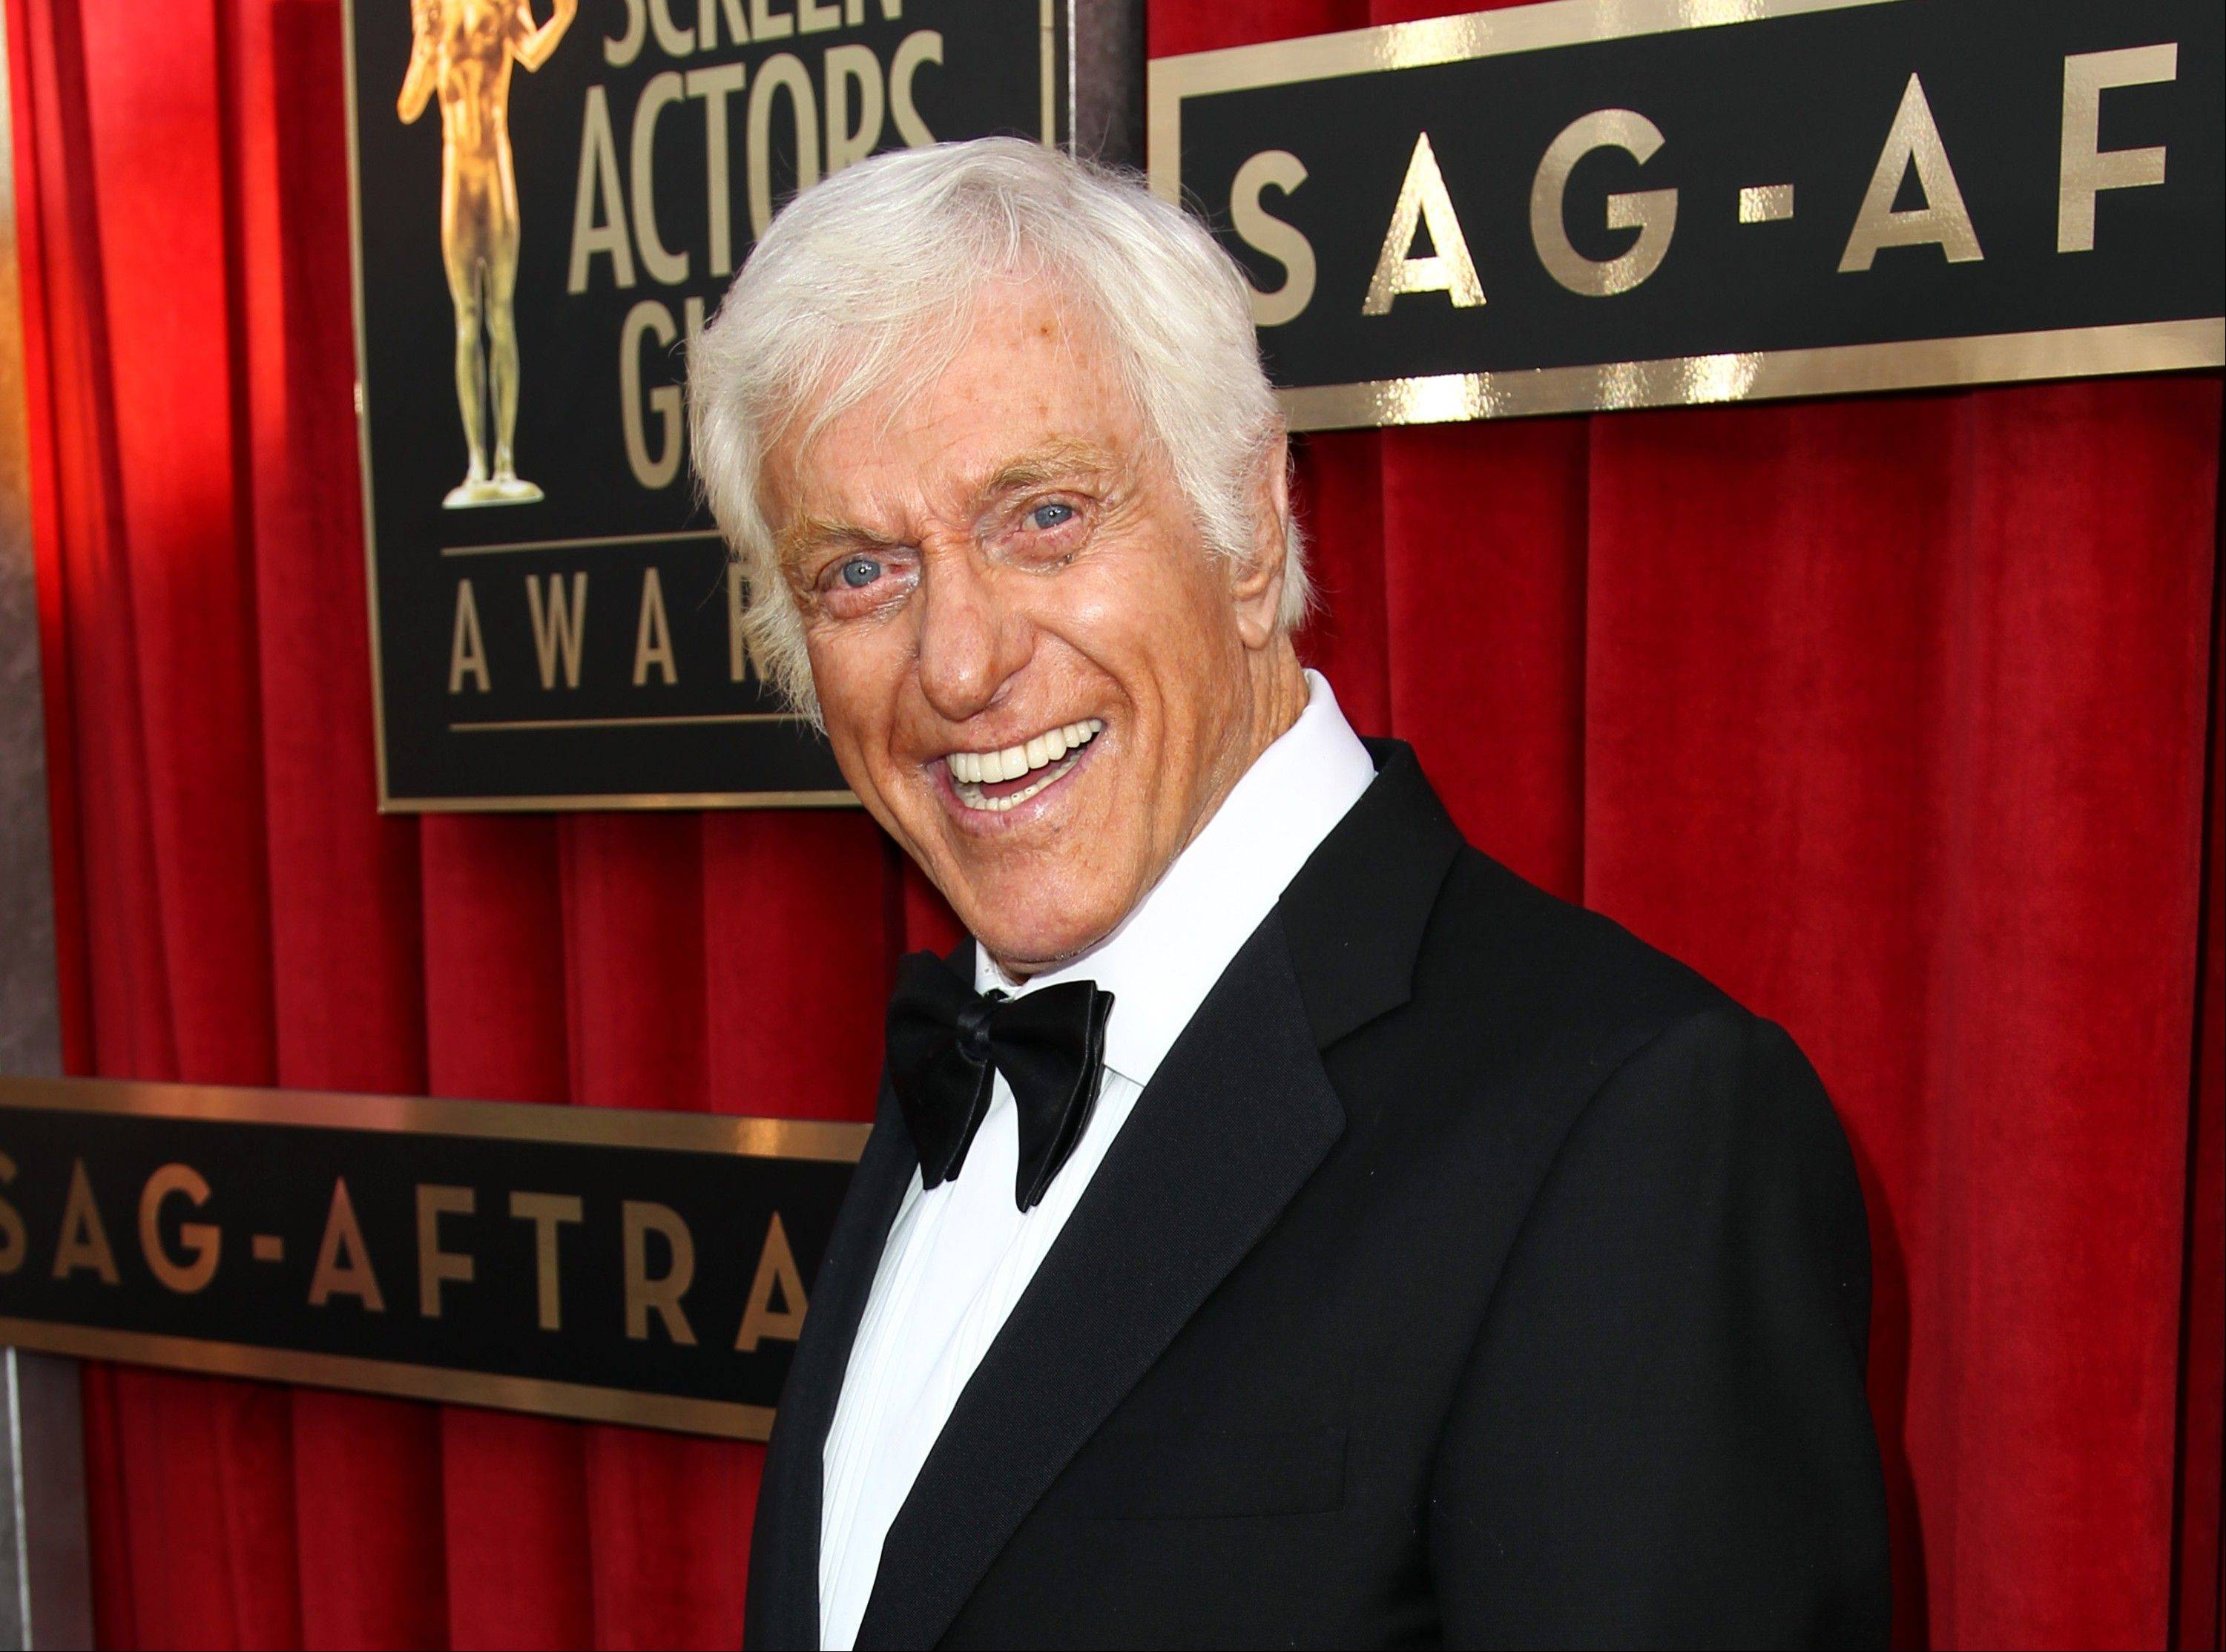 Actor Dick Van Dyke is undergoing tests for 'cranial throbbing' that's causing him to lose sleep.